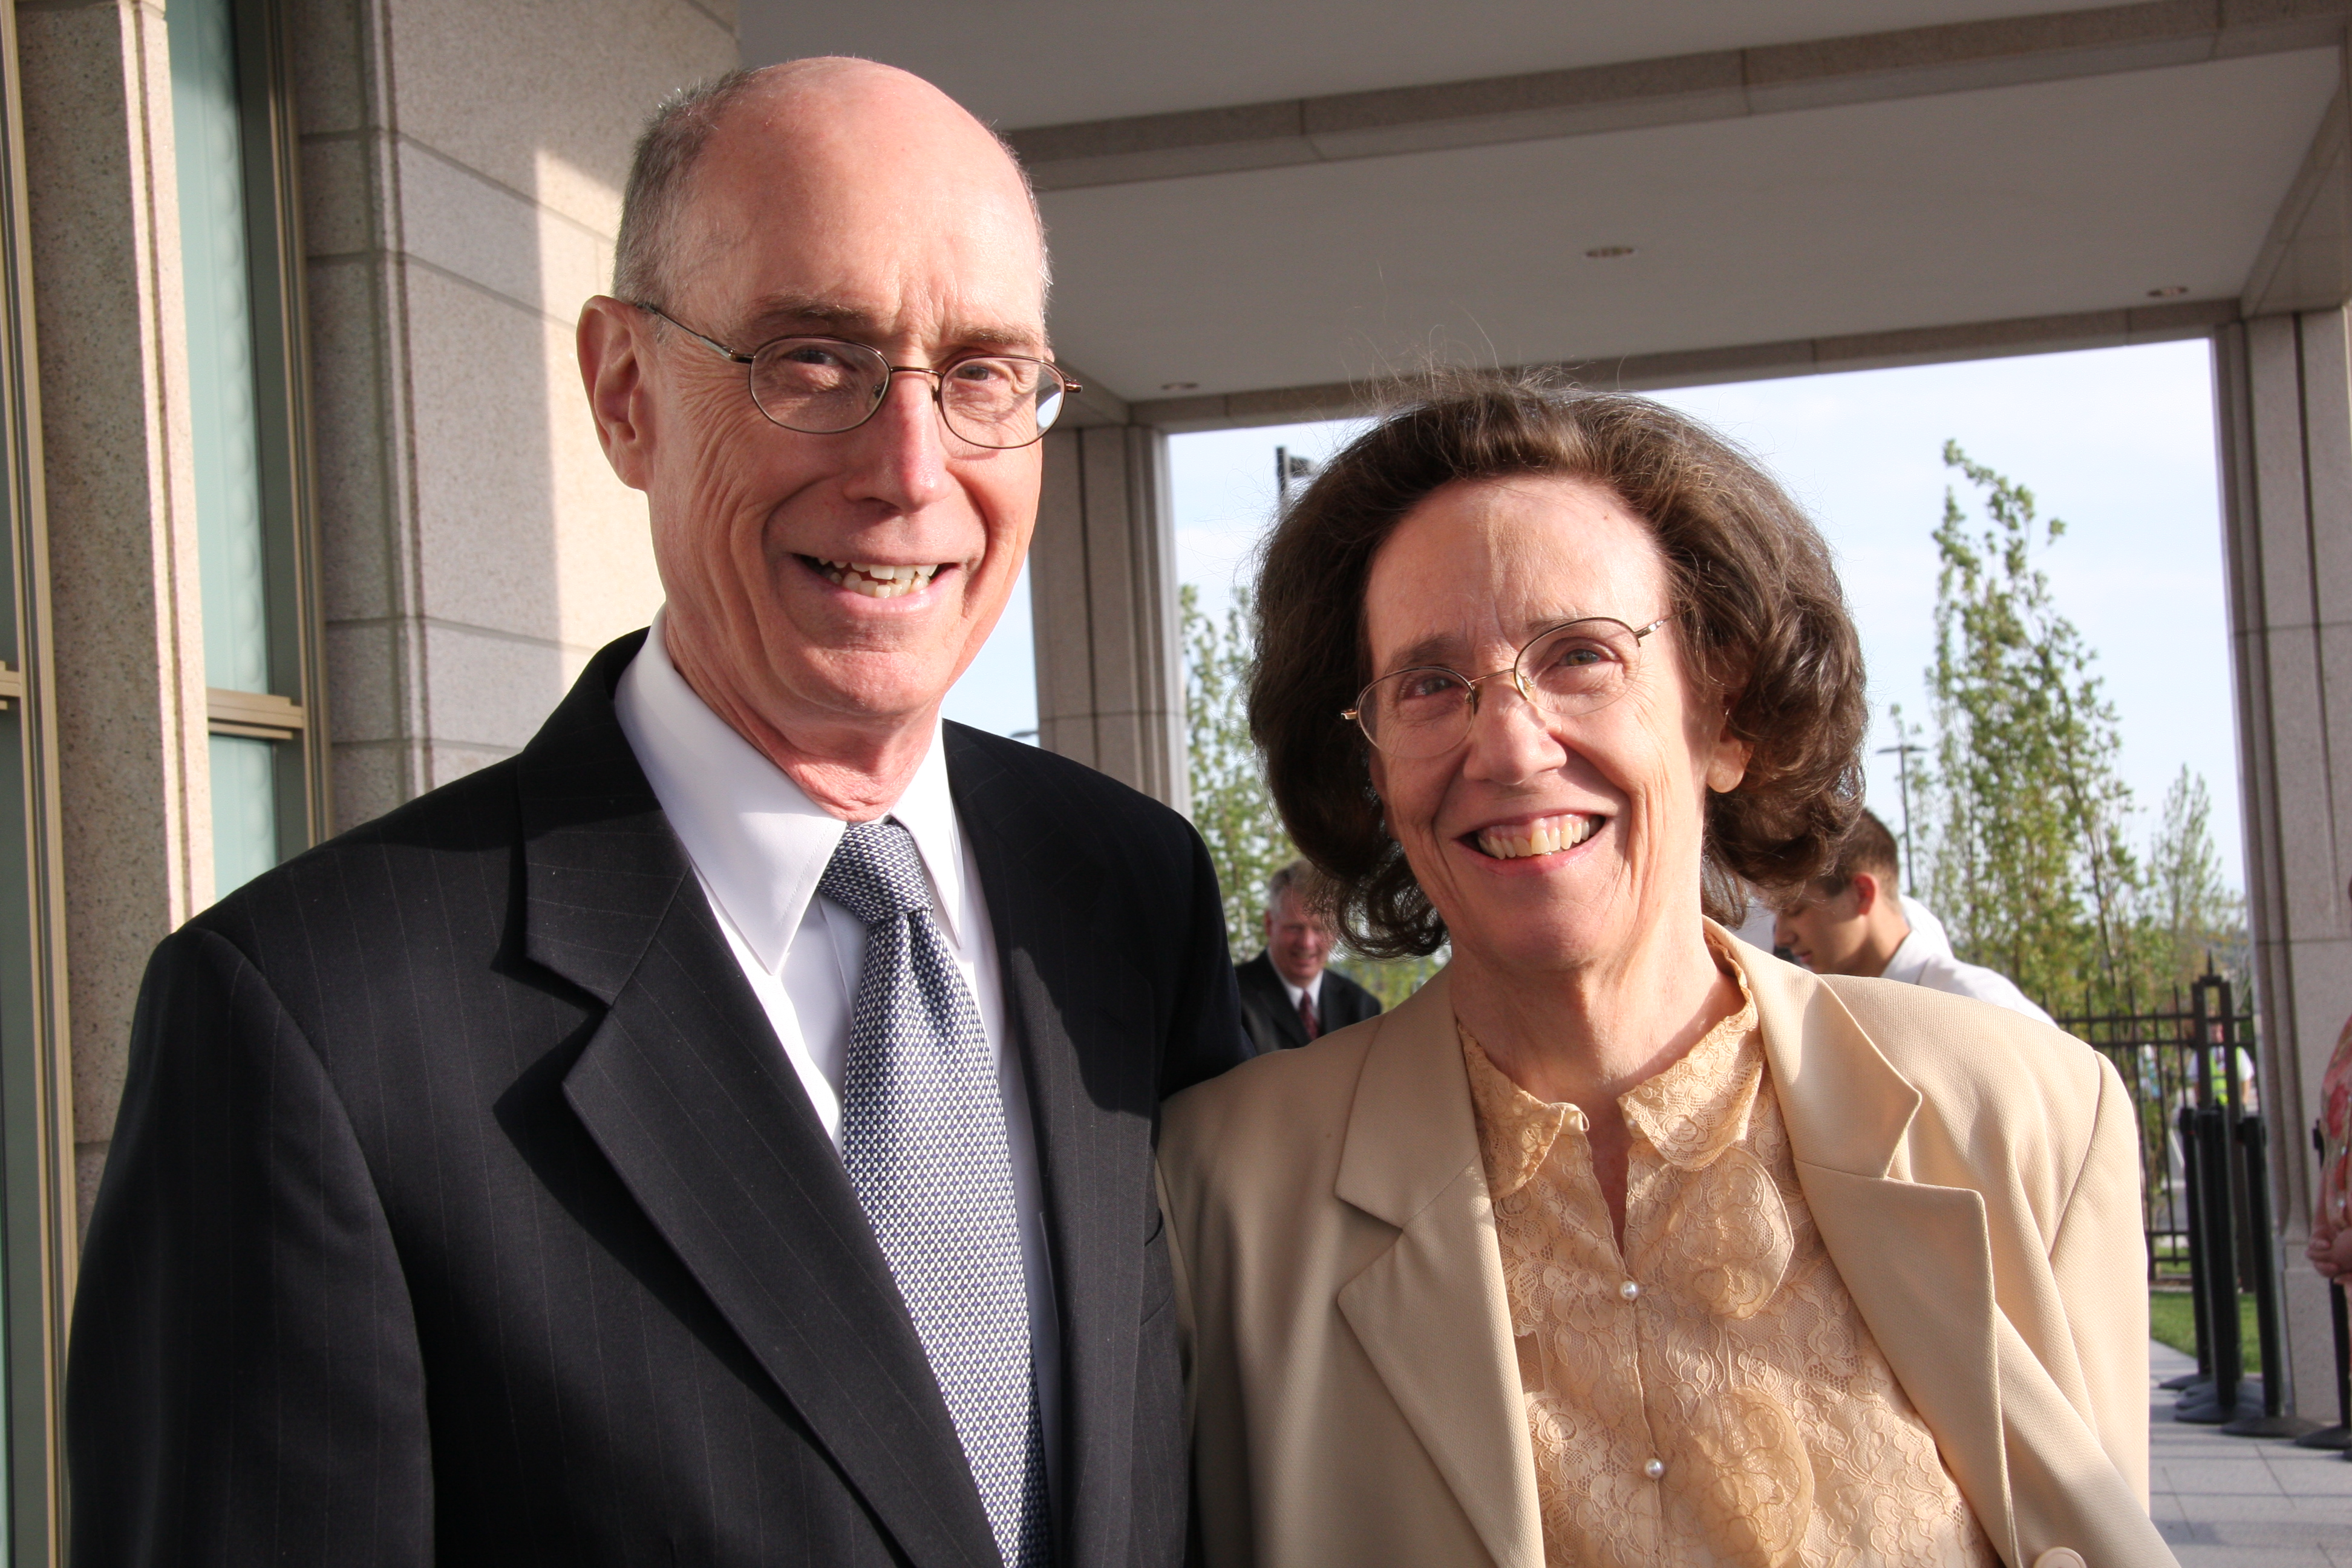 President Henry B. Eyring and his wife, Sister Kathleen Eyring, arrive Saturday morning for the second day of the dedication of the Oquirrh Mountain Utah Temple, Aug.22, 2009 in South Jordan, Utah.